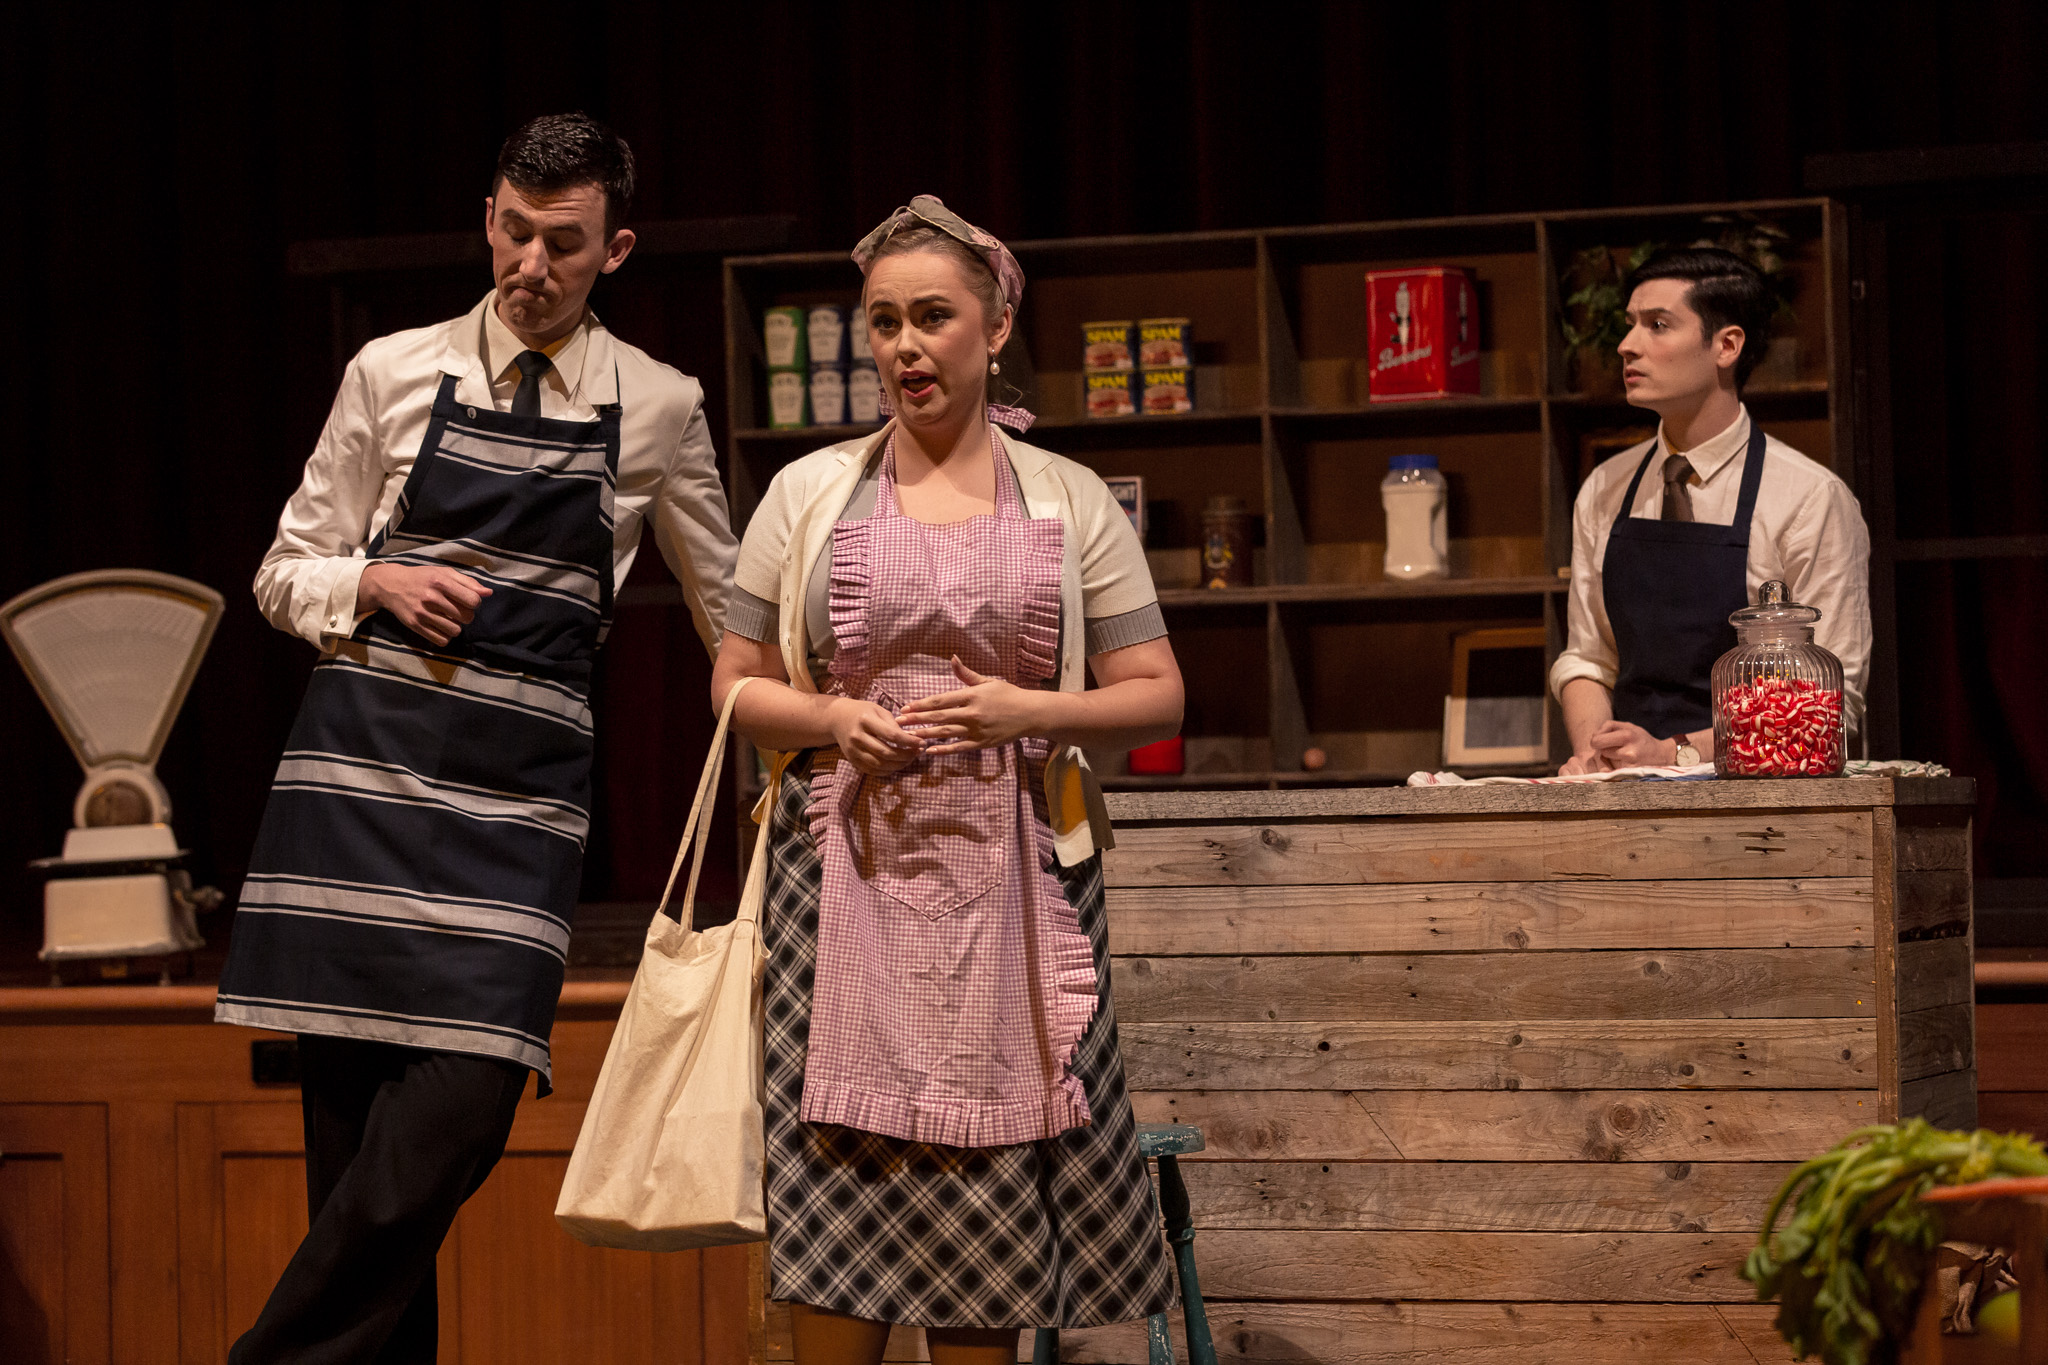 L–R: Darcy Carroll, Chloe Harris and Alastair-Copper Golec in Albert Herring, 2019. By Ben Fon.